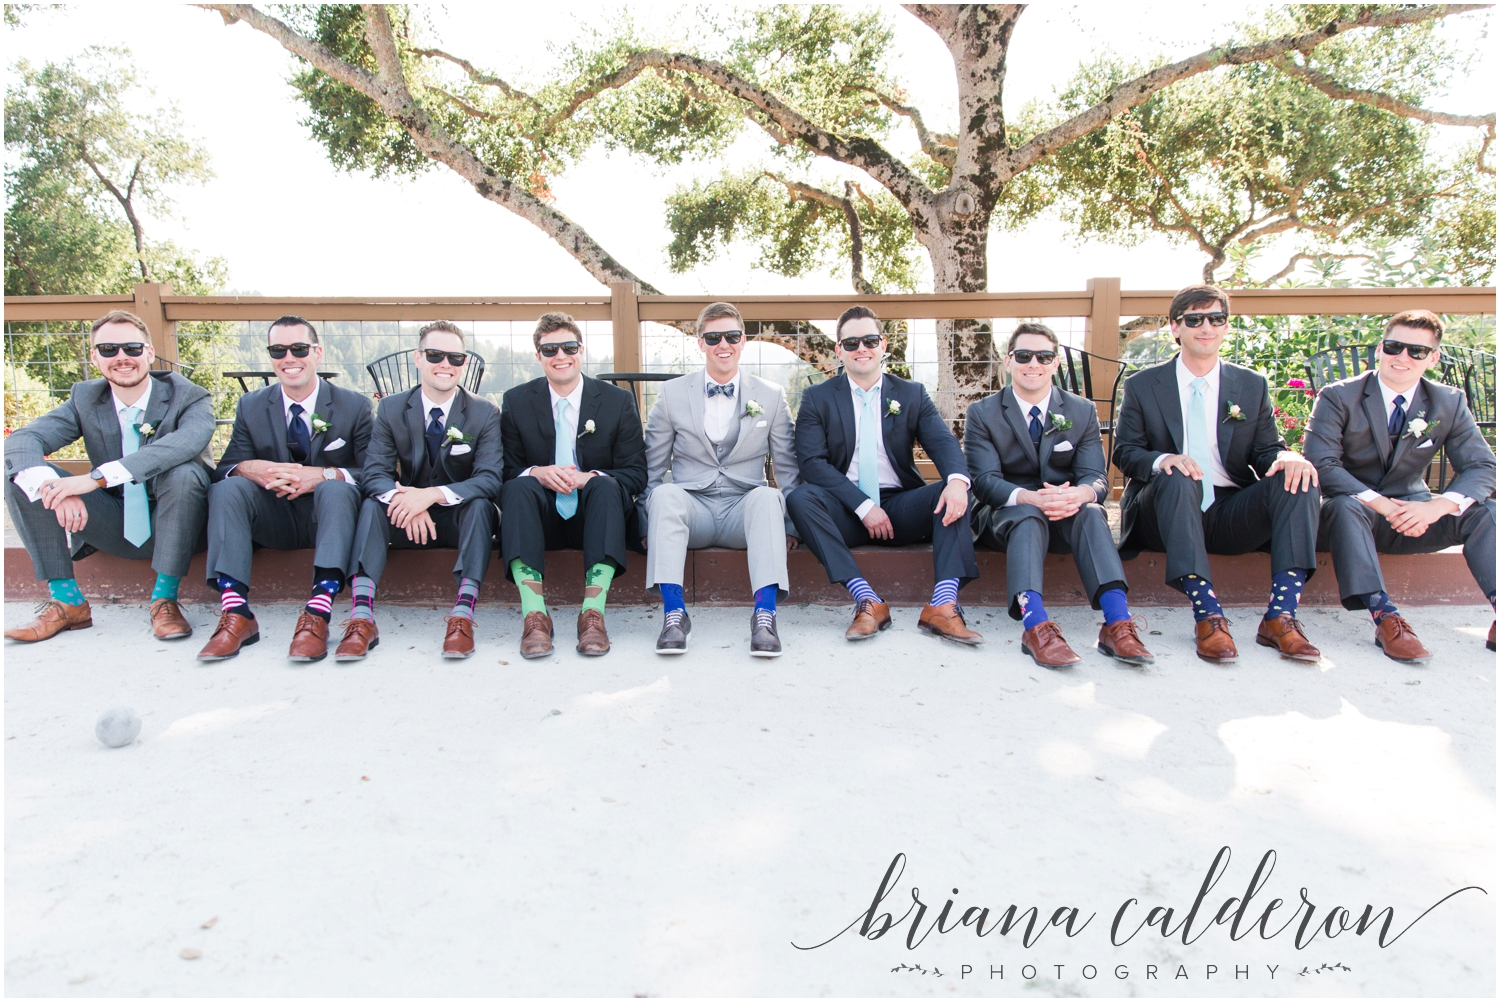 Regale Winery Wedding photos by Briana Calderon Photography_0660.jpg